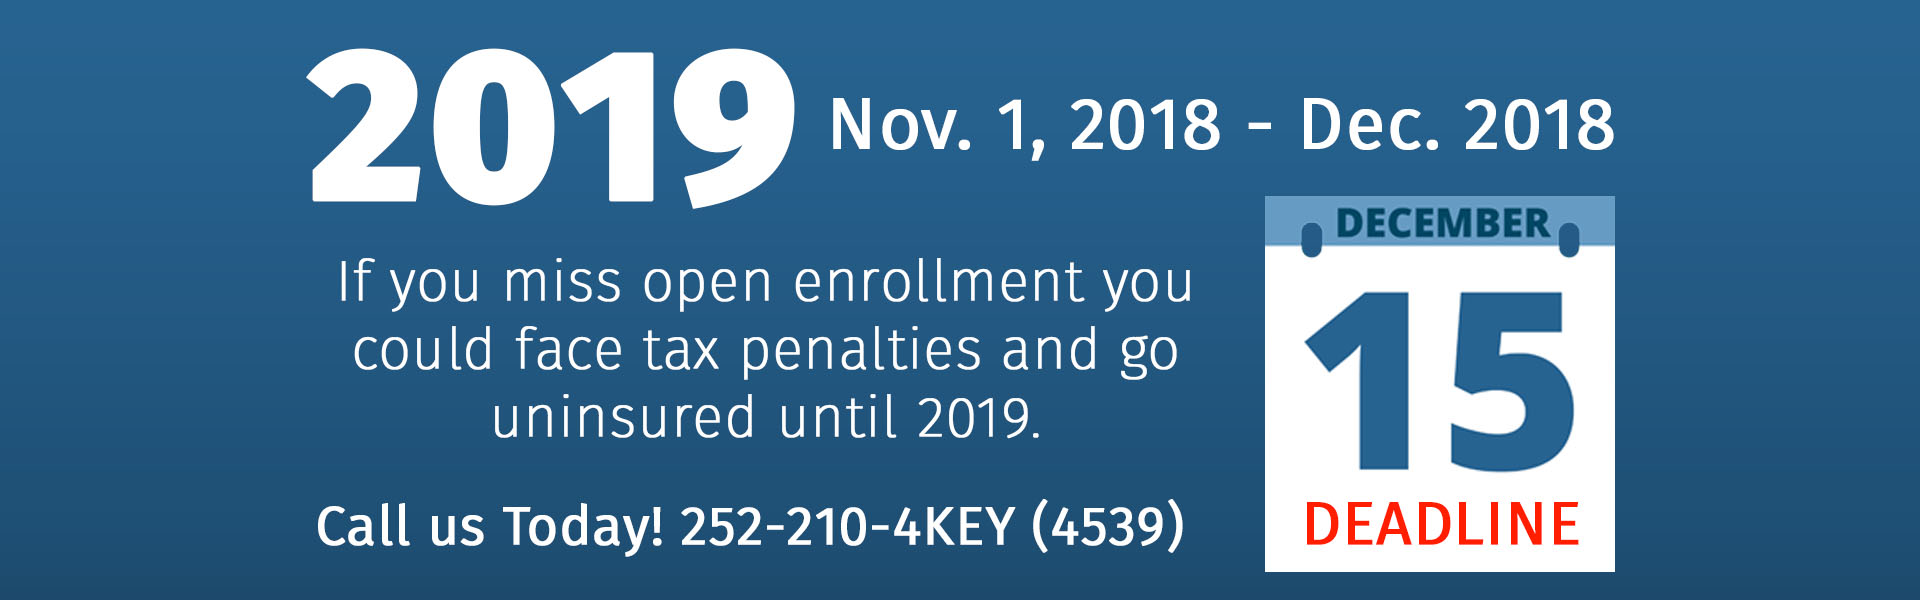 oepn-enrollment-2018-revised-2